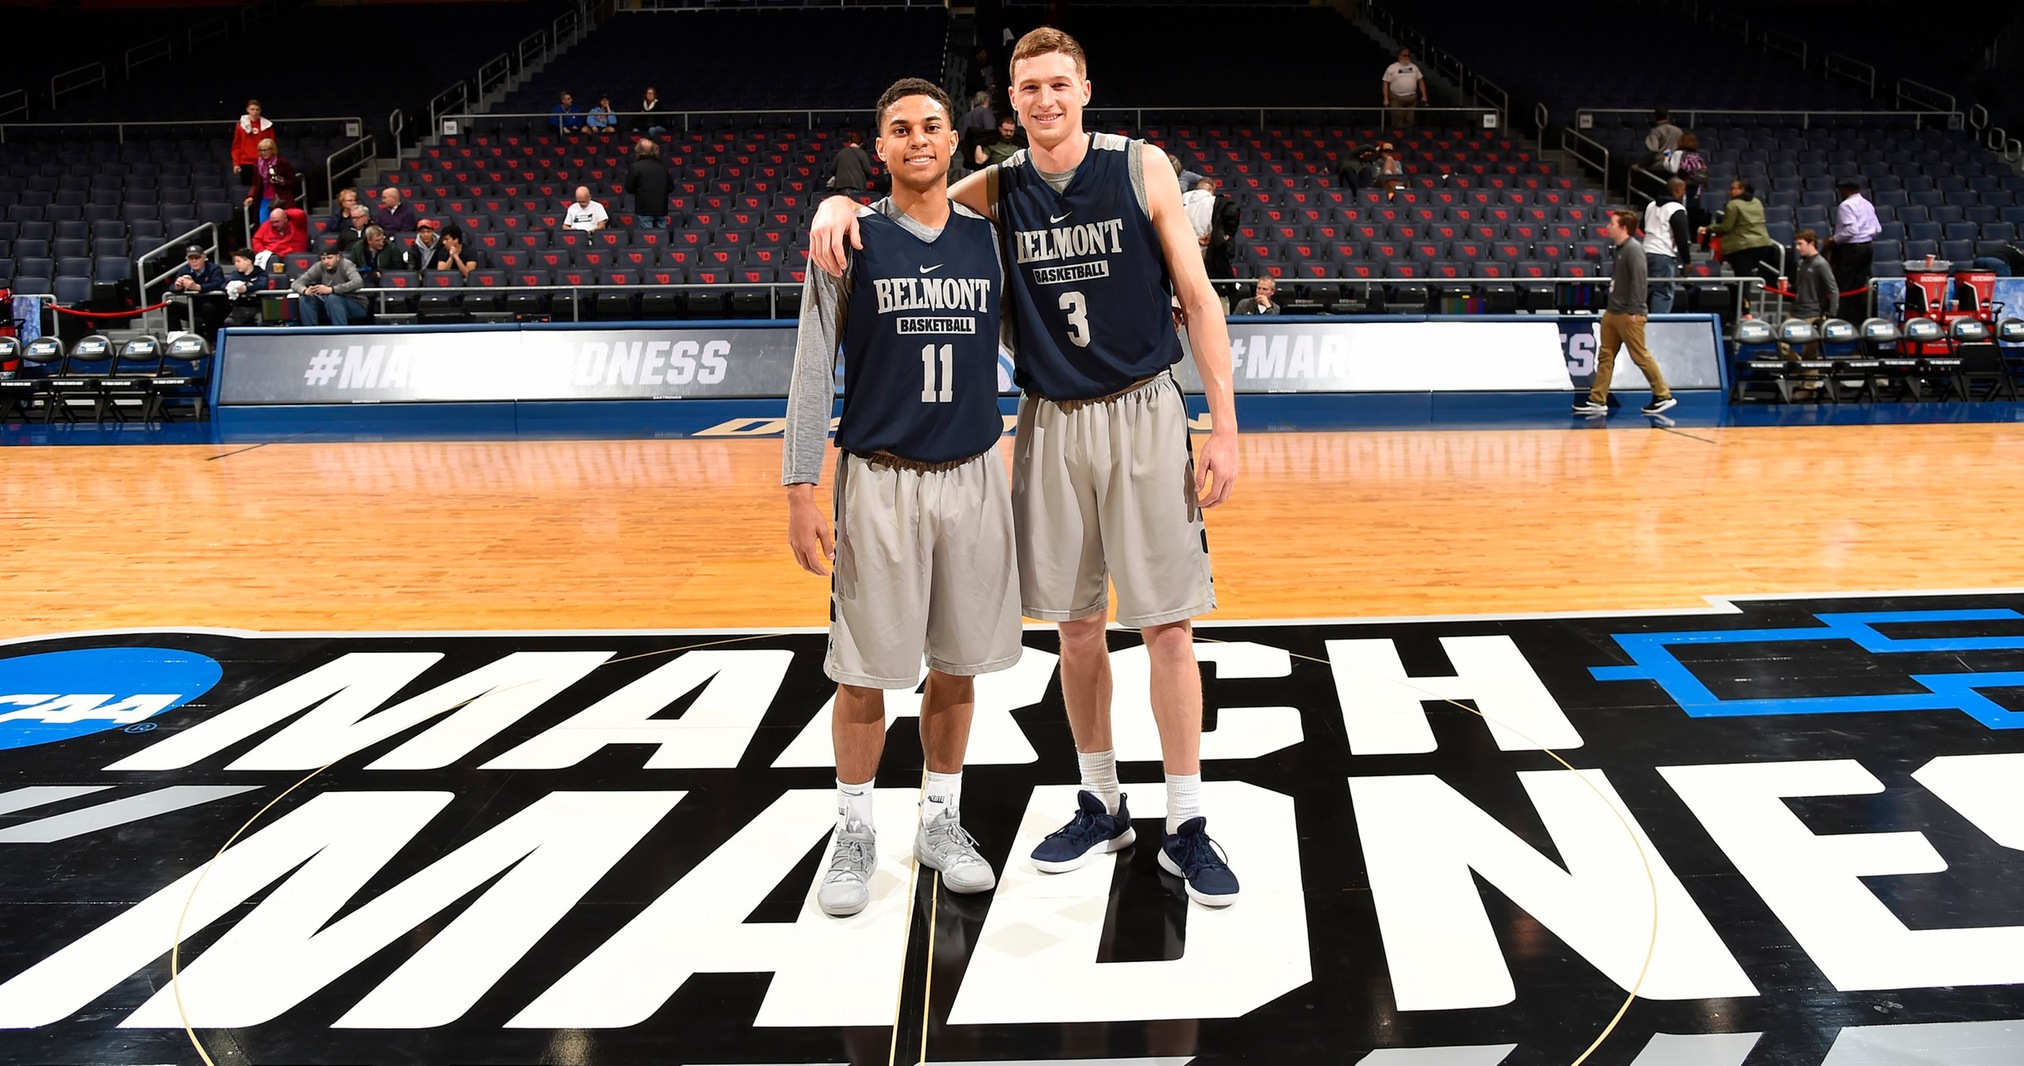 Follow Kevin & Dylan in NBA Summer League